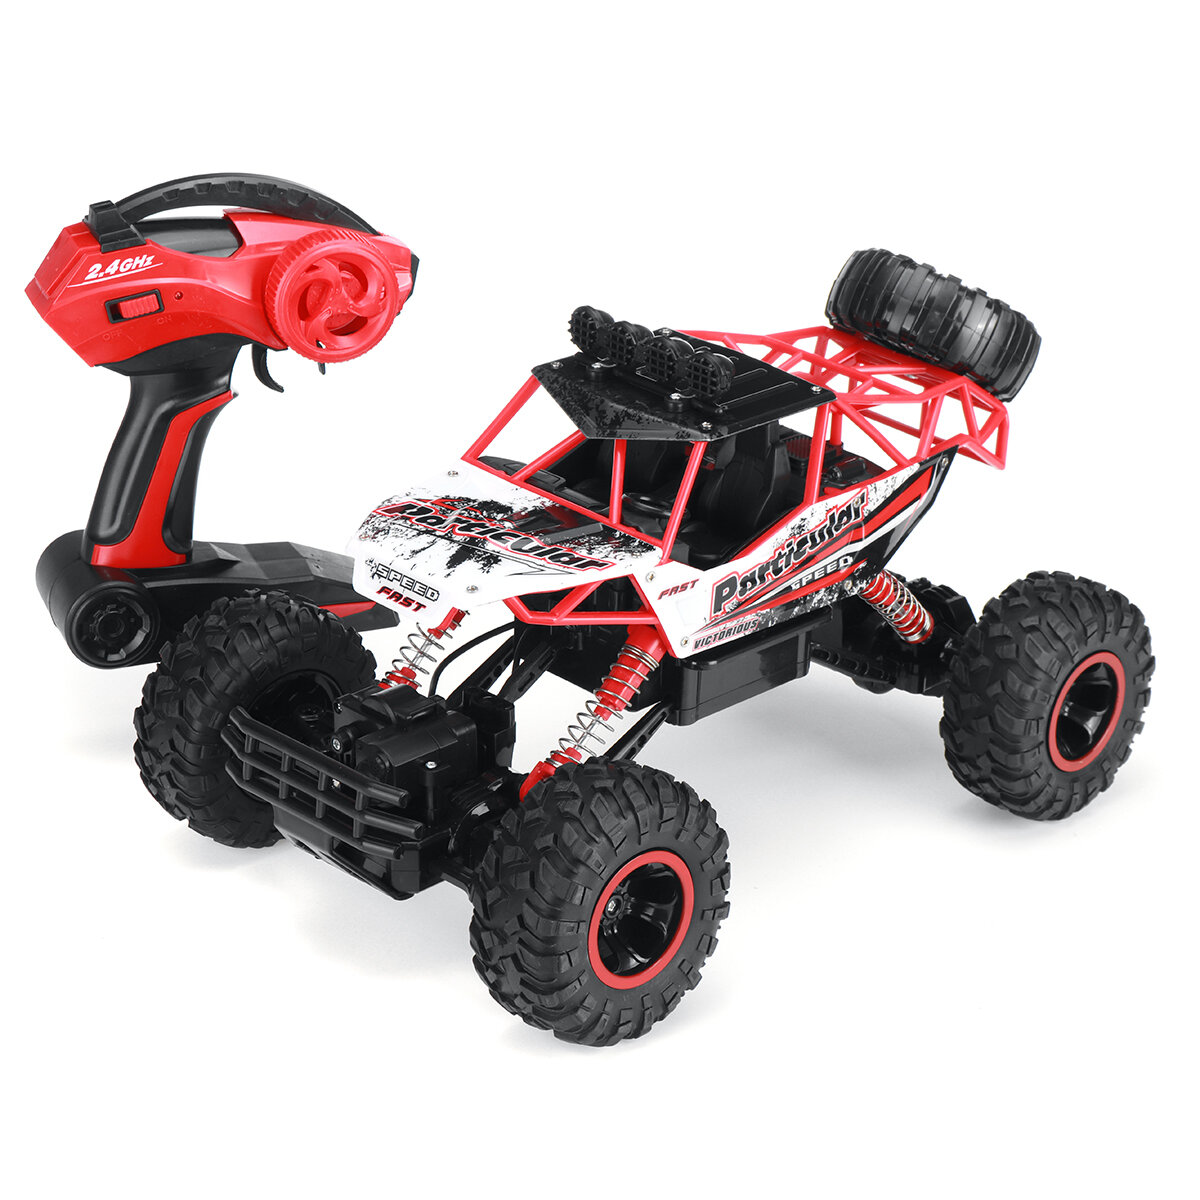 1/12 Alloy Metal RC Car with Two Rechargeable Batteries 4WD 2.4G Off Road Big Foot Crawler RC Vehicle Models